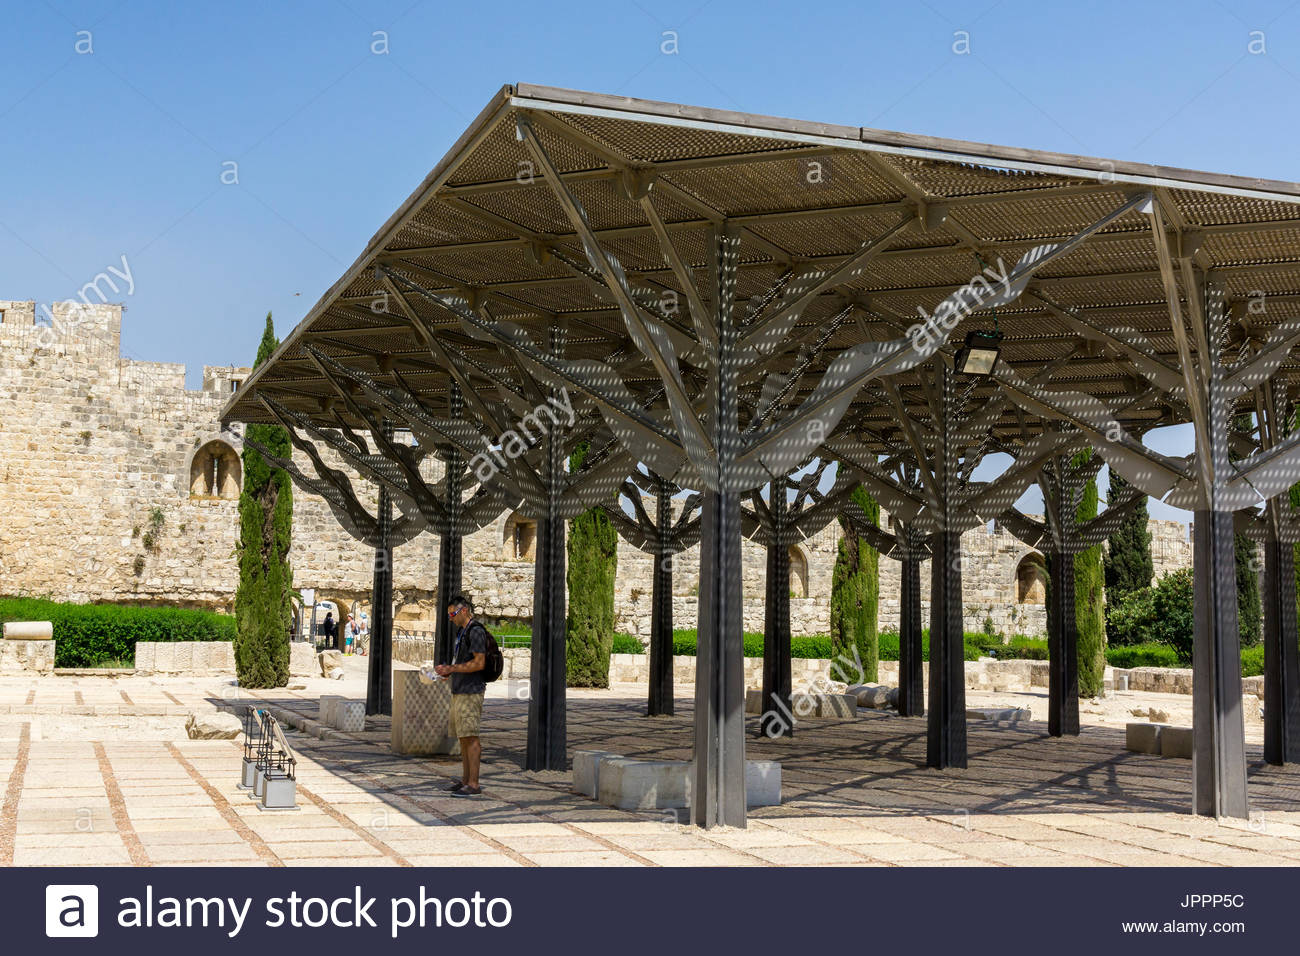 A tourist pauses in the shade at the Jerusalem Archaeological Park at the southern end of the Temple Mount in Jerusalem, Israel. - Stock Image